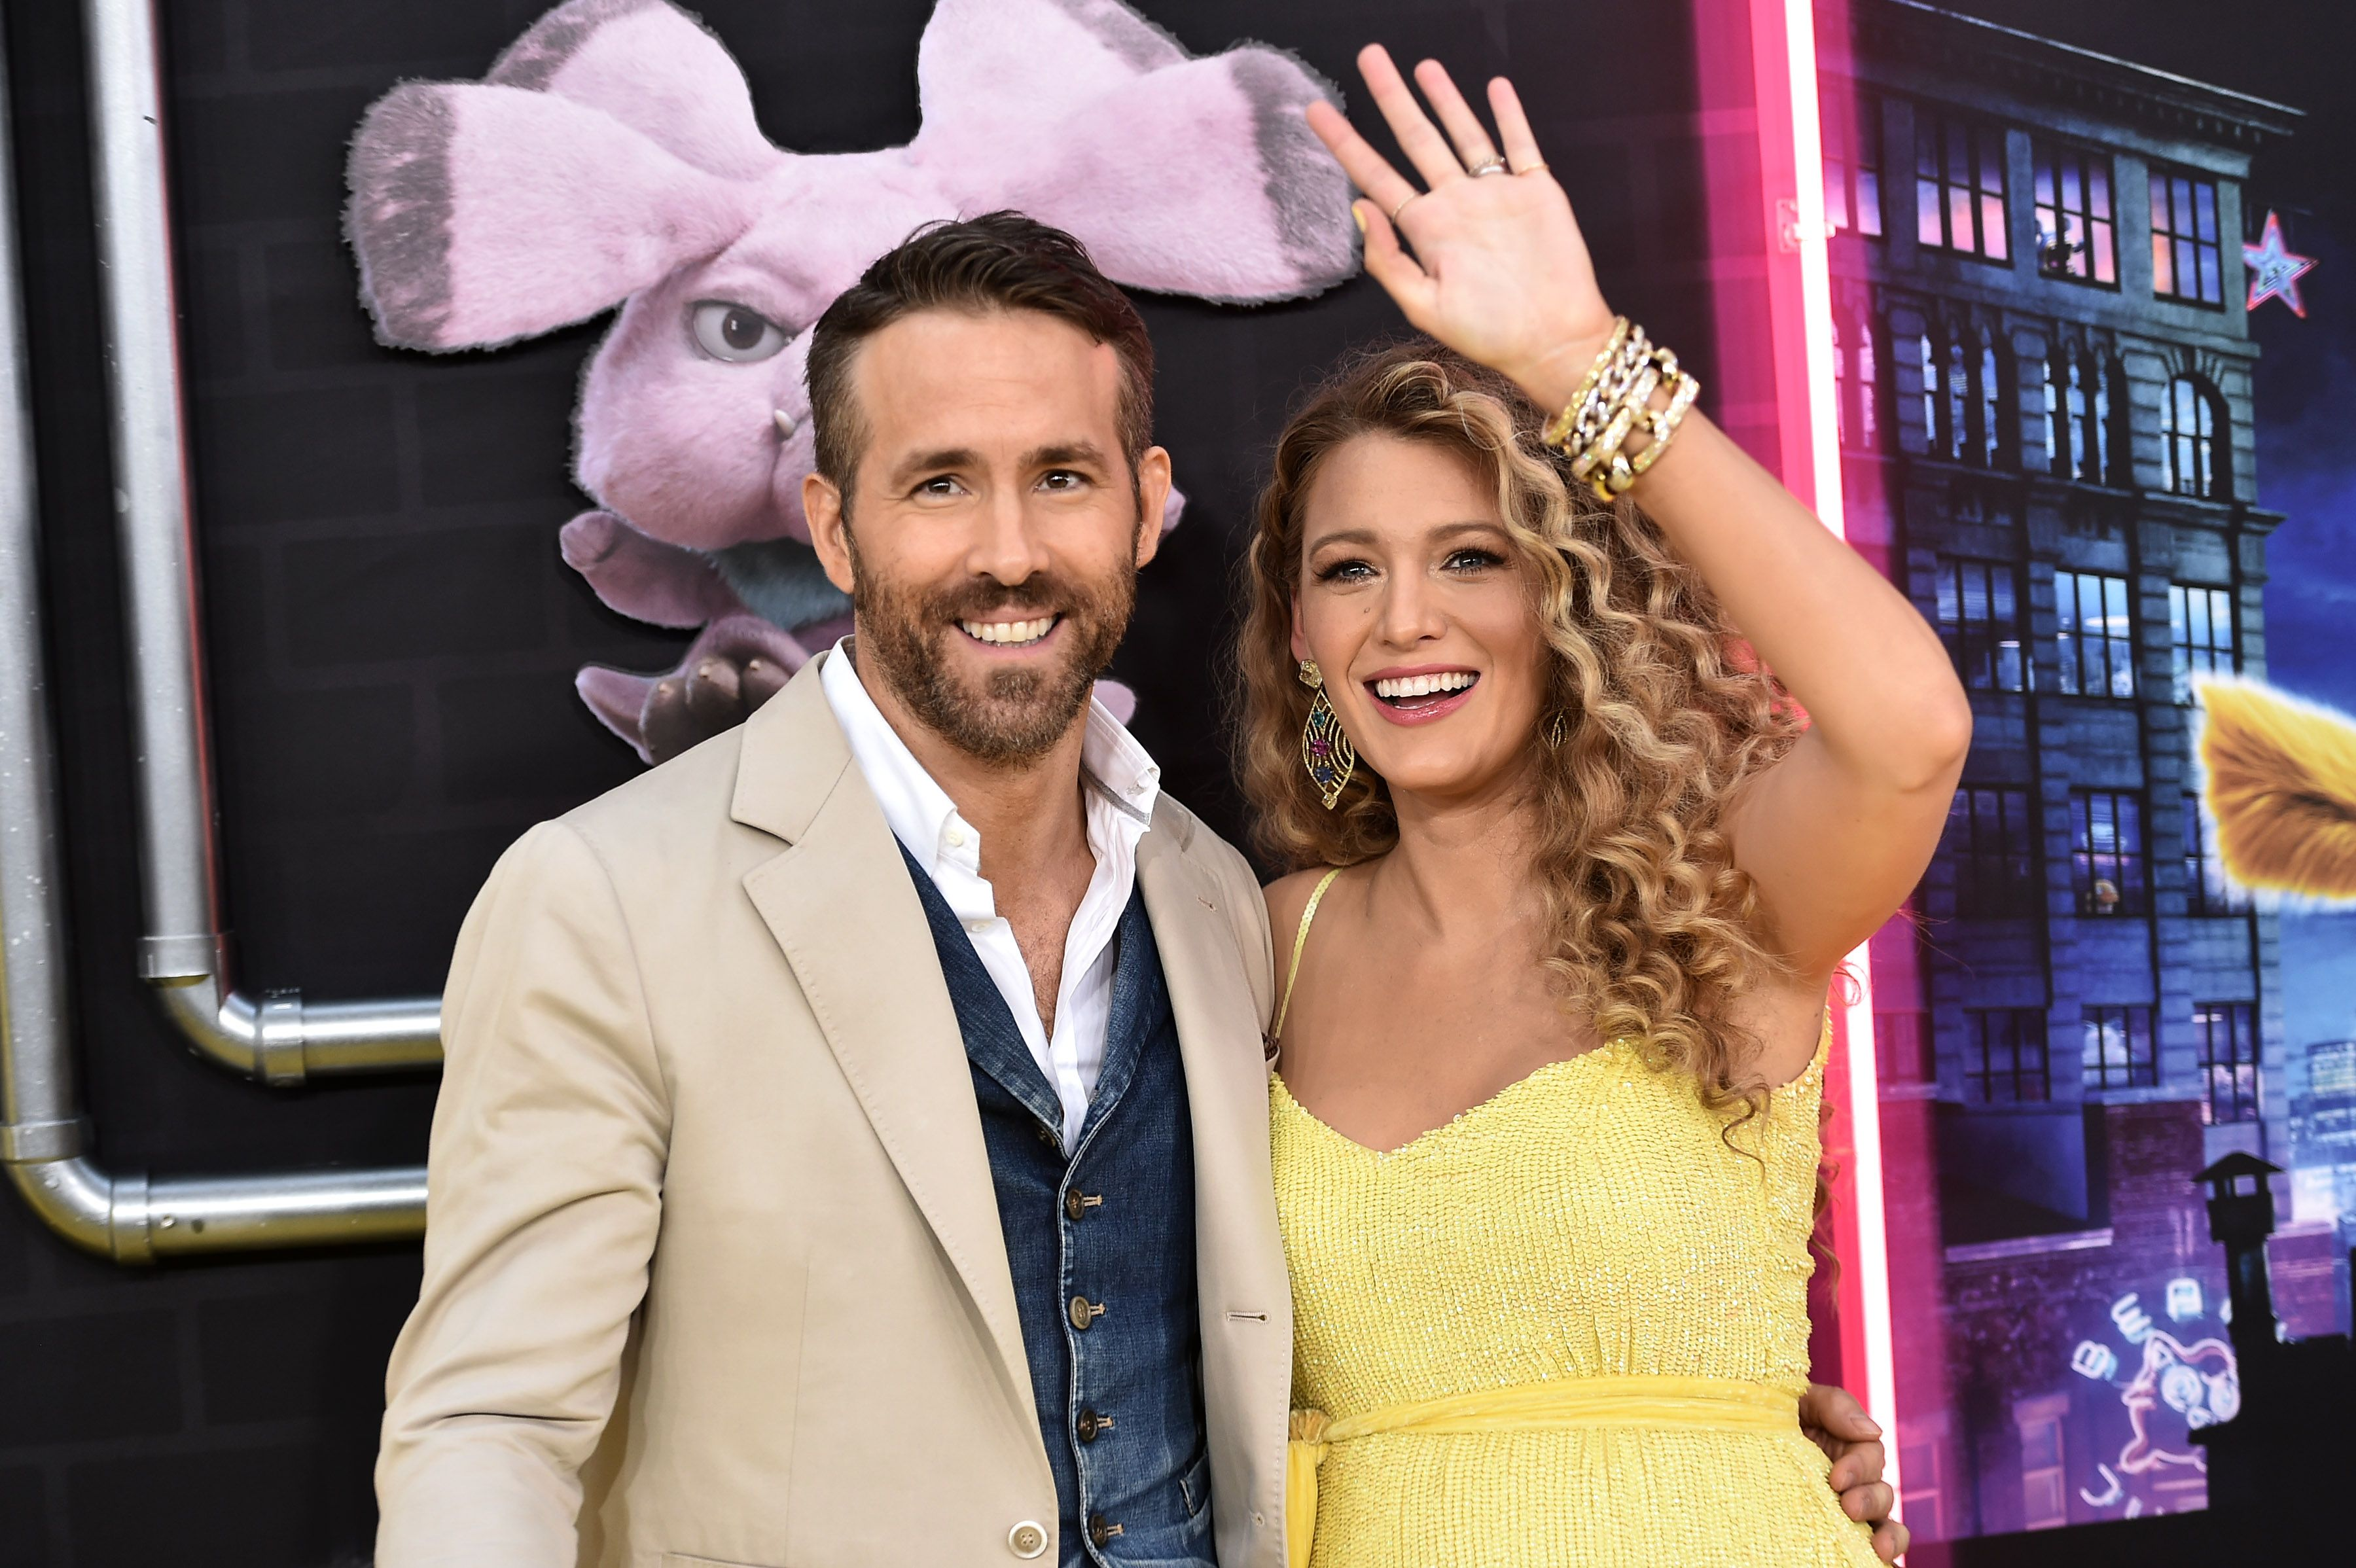 Ryan Reynolds and Blake Lively pose for photographers